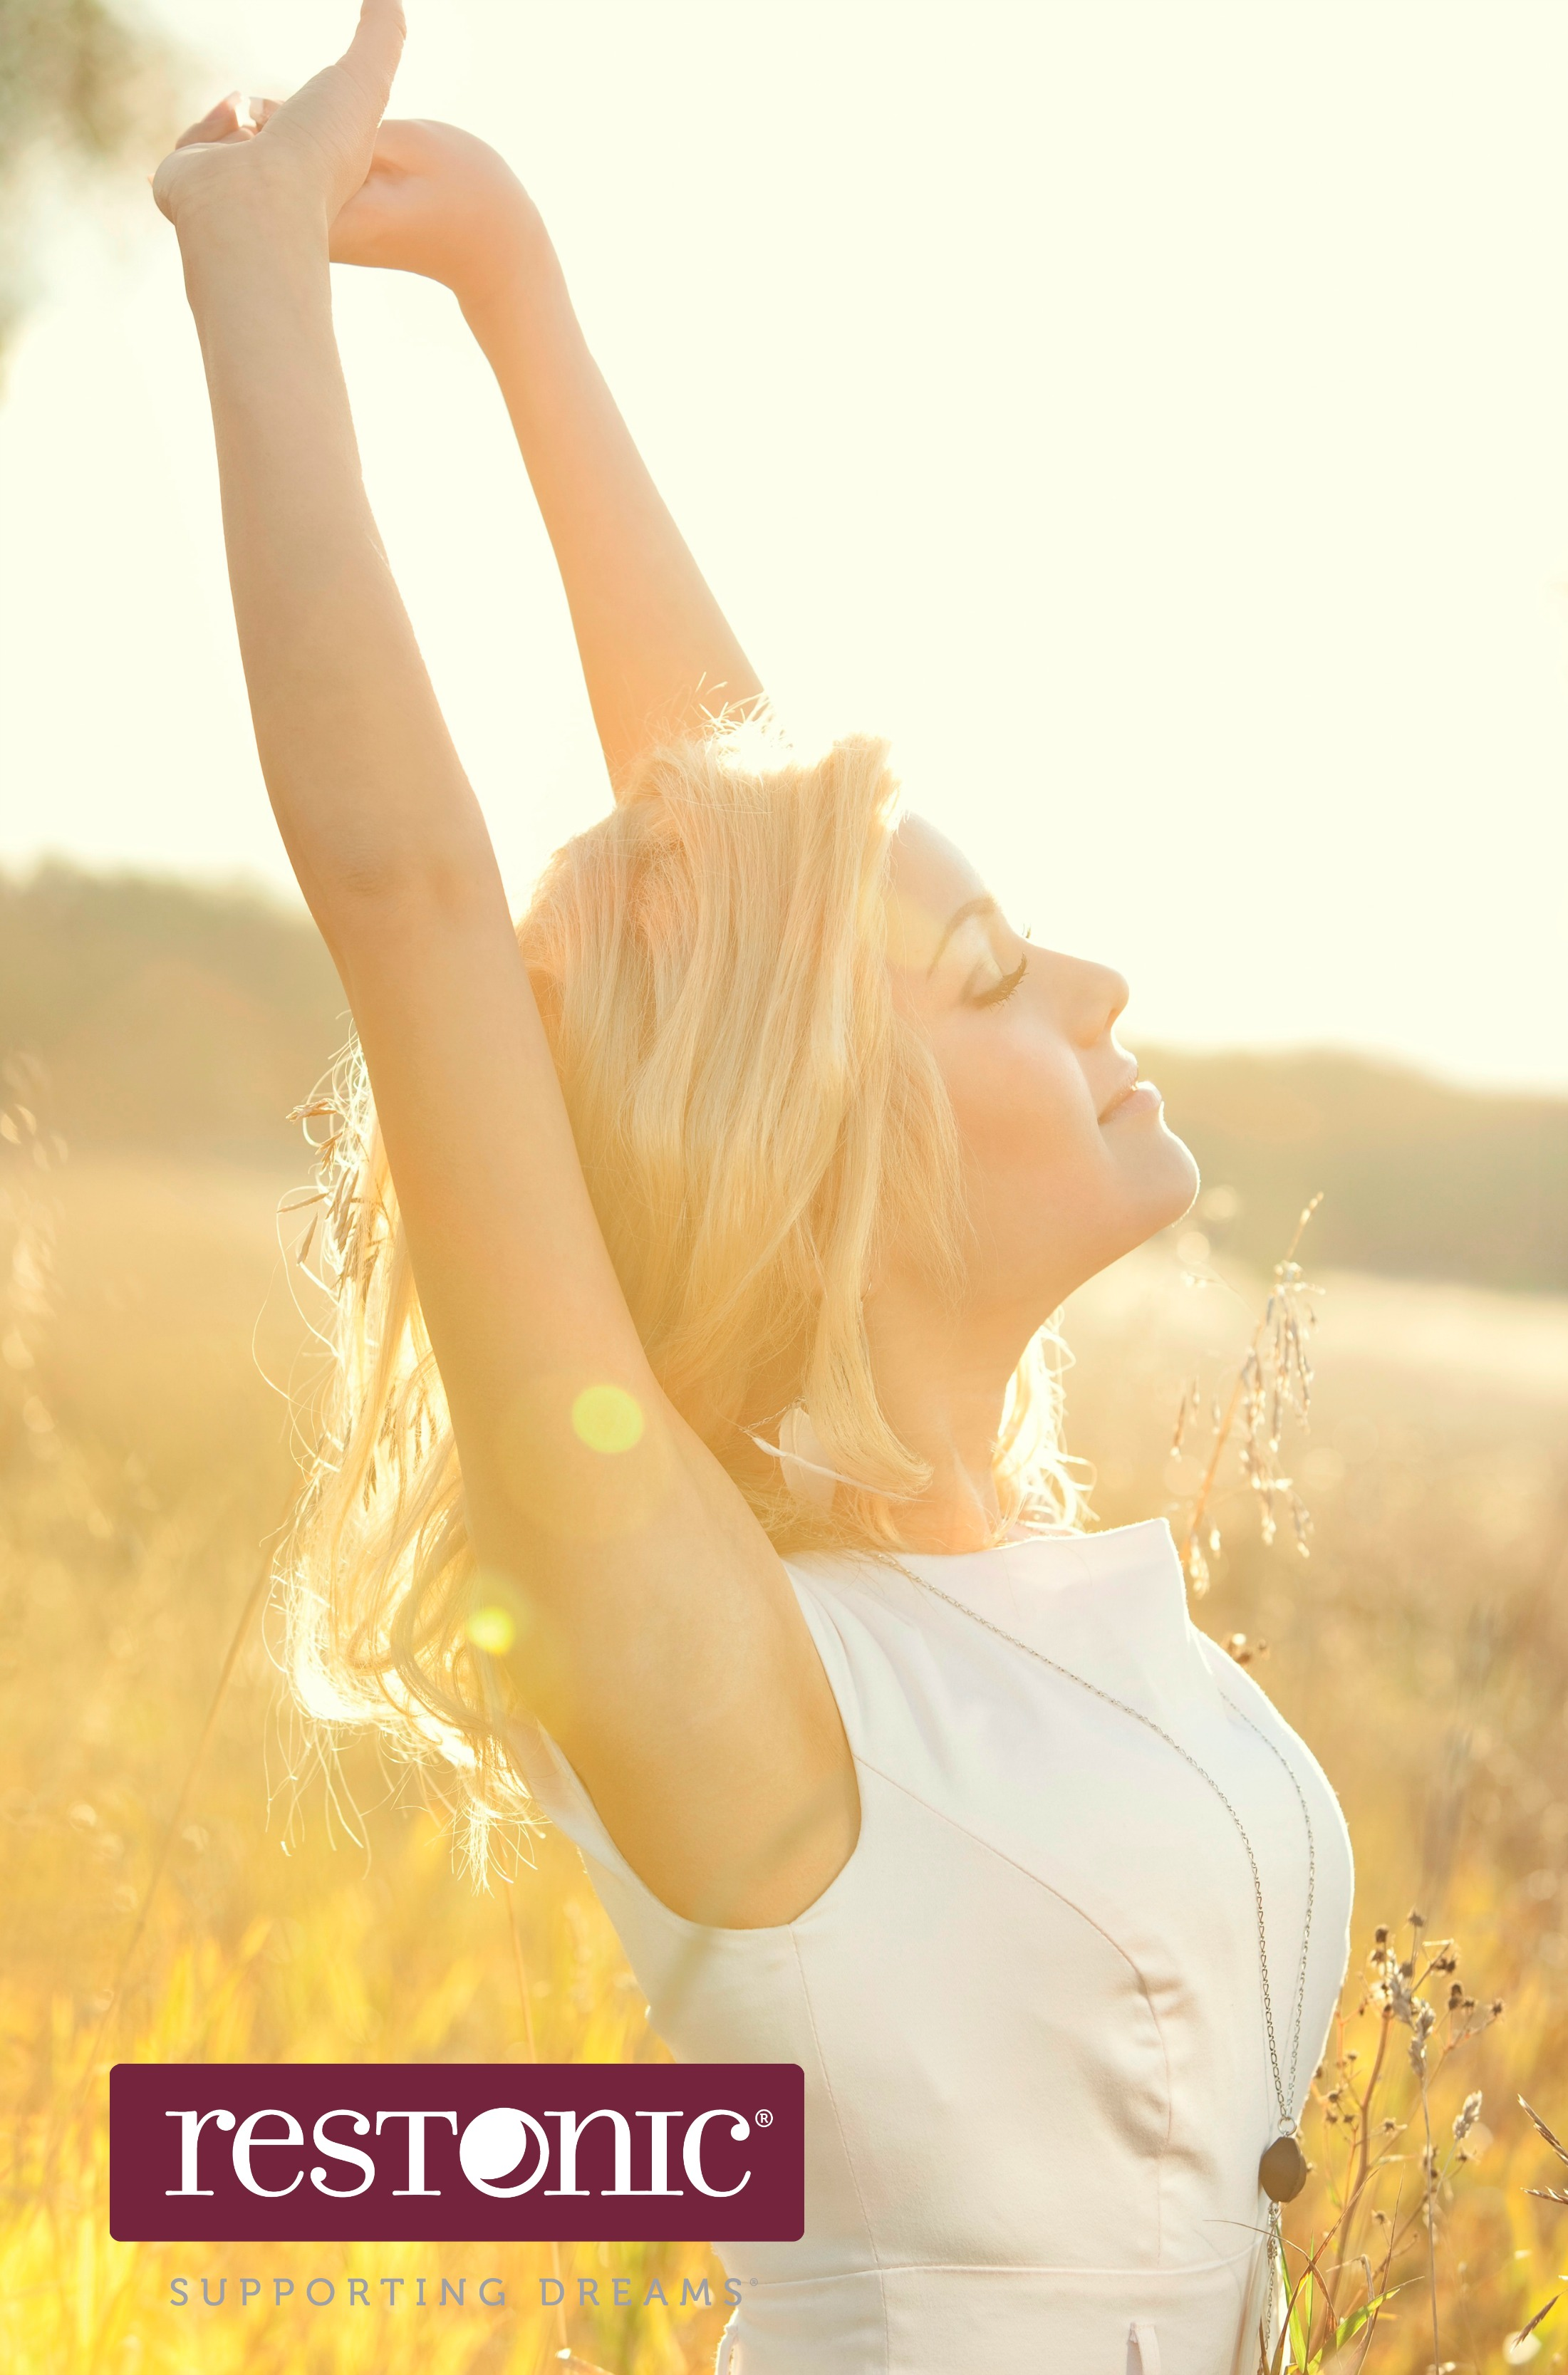 Woman stretching her arms amid sunlight as serotonin combats seasonal affective disorder.